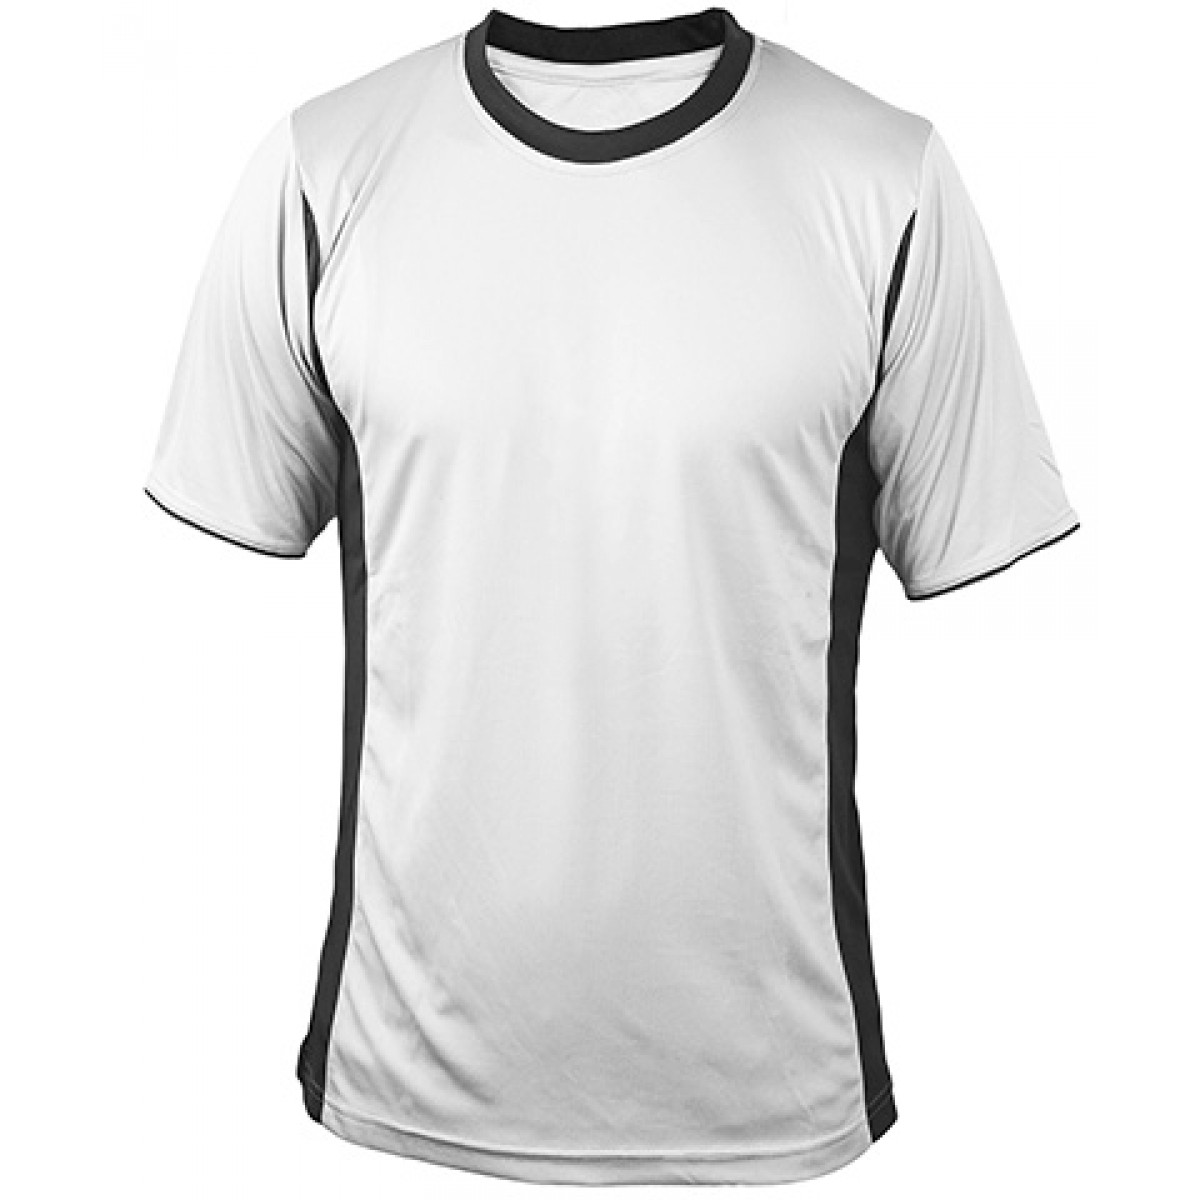 White Short Sleeves Performance With Black Side Insert-Black-XL